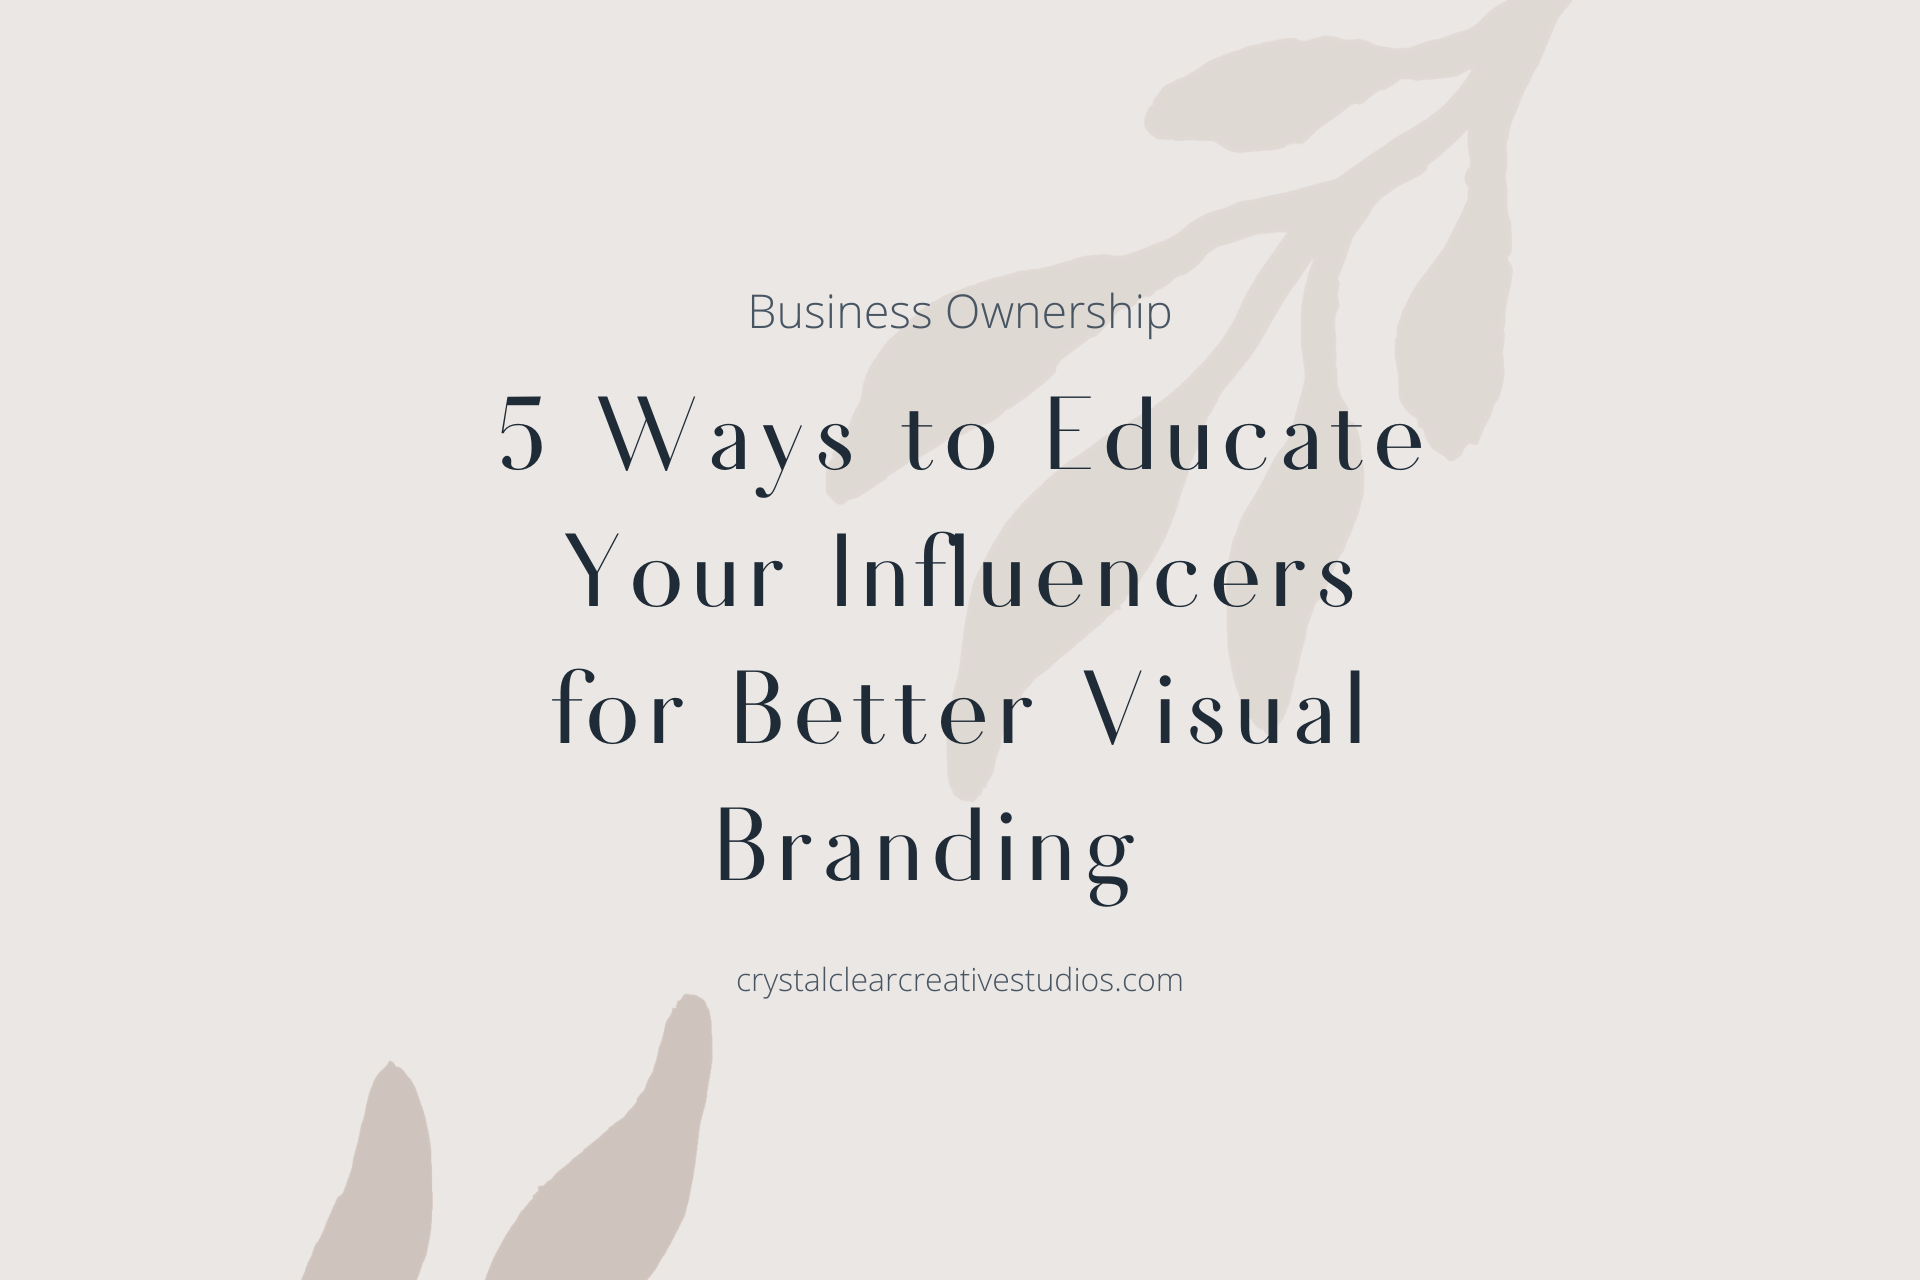 5 Ways to Educate Your Influencers For Better Visual Branding